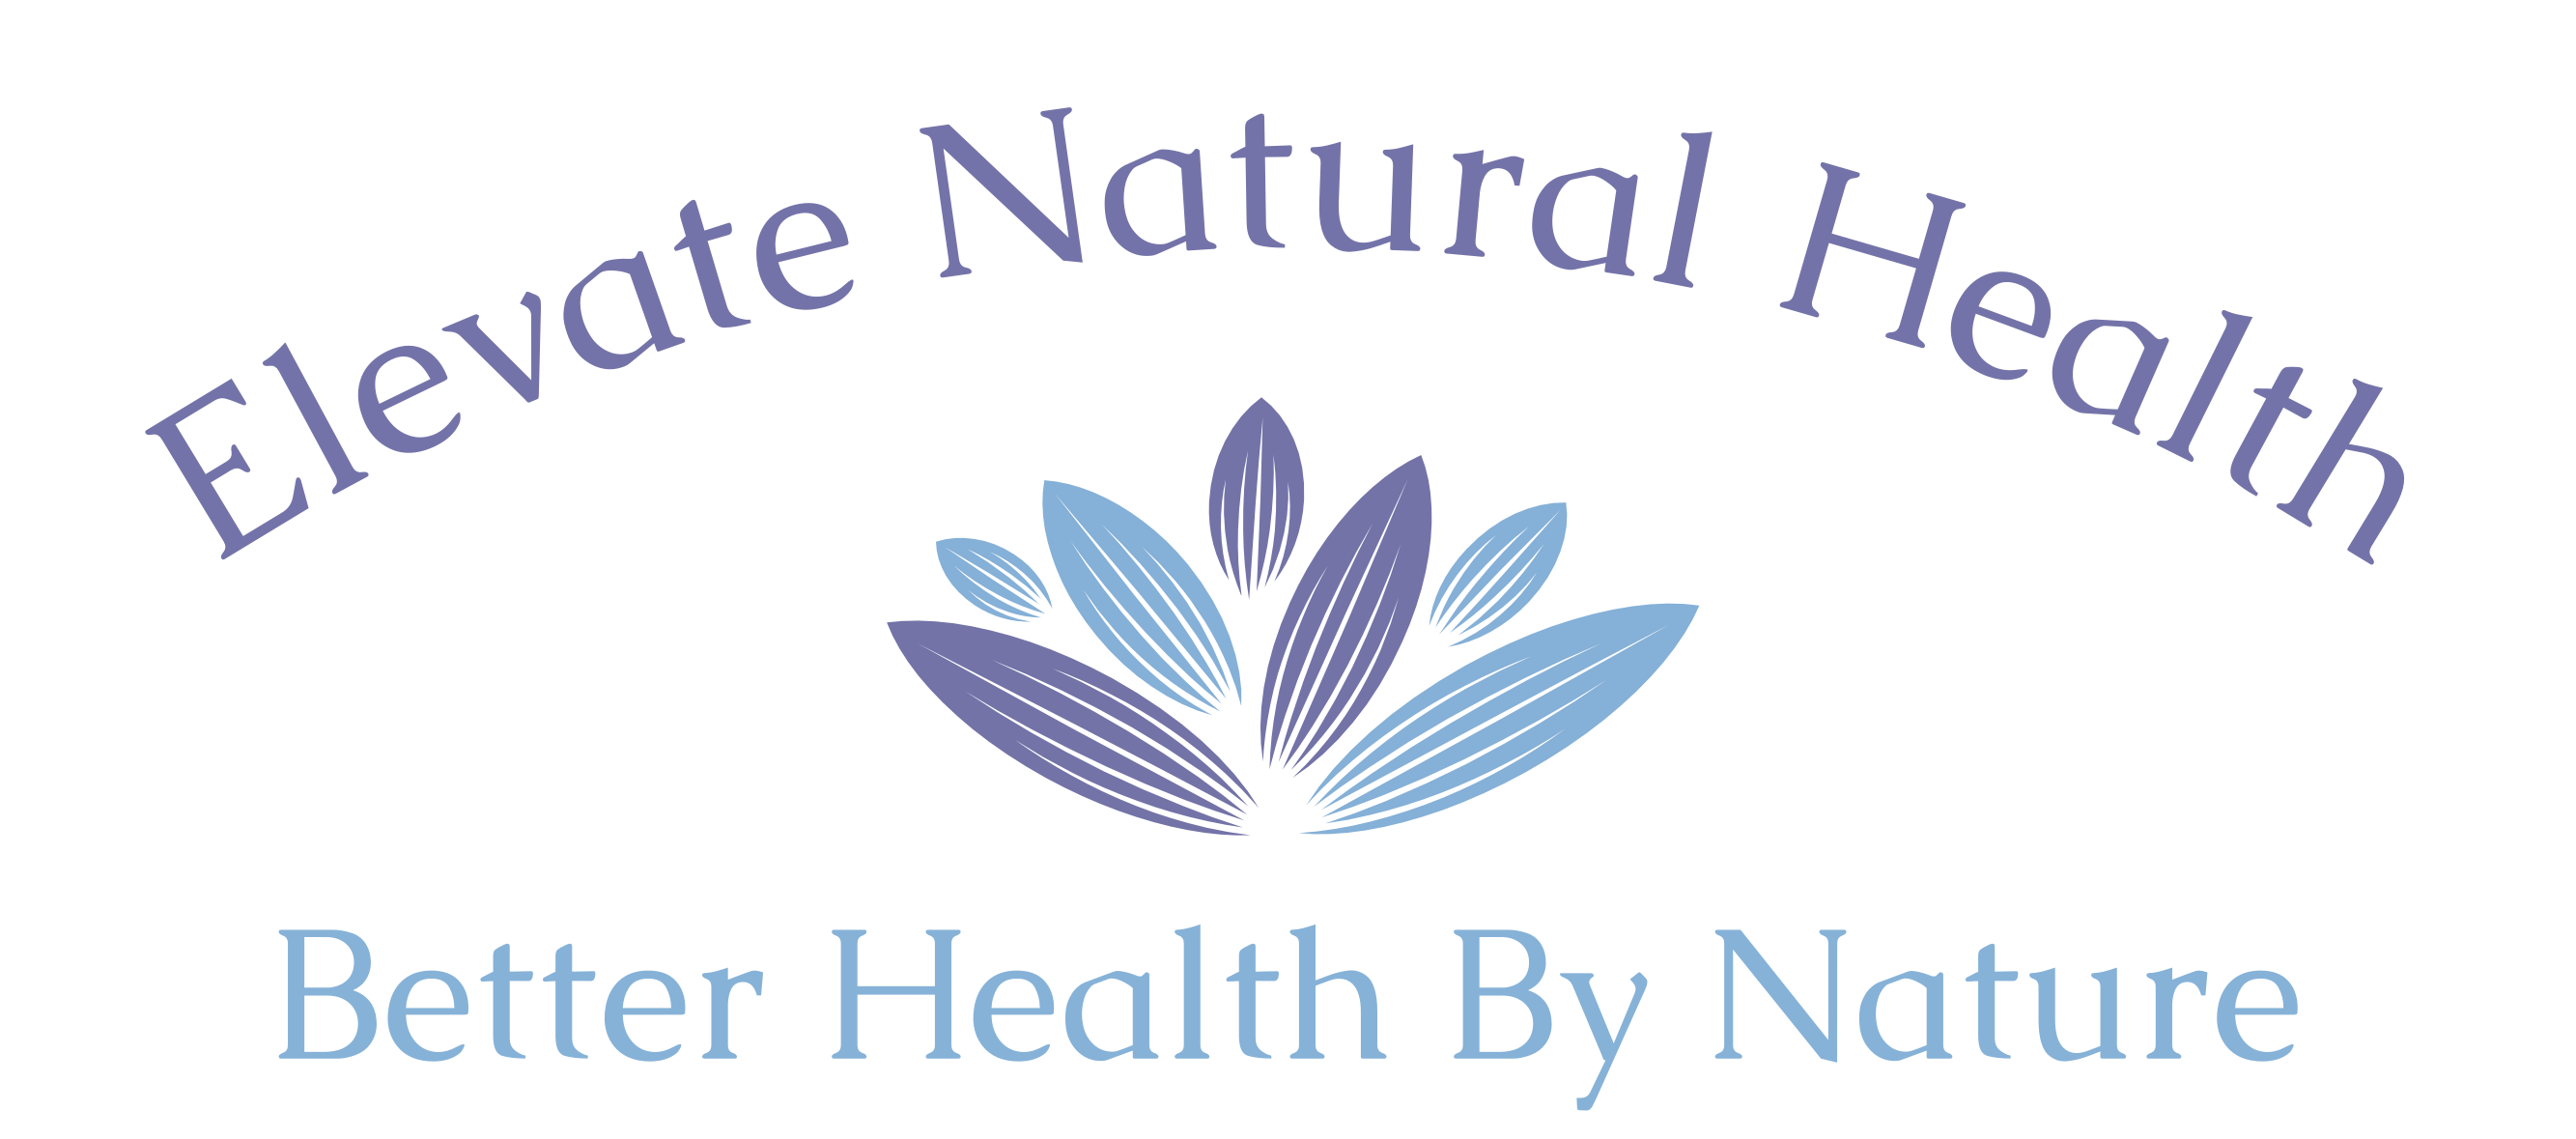 Elevate Natural Health